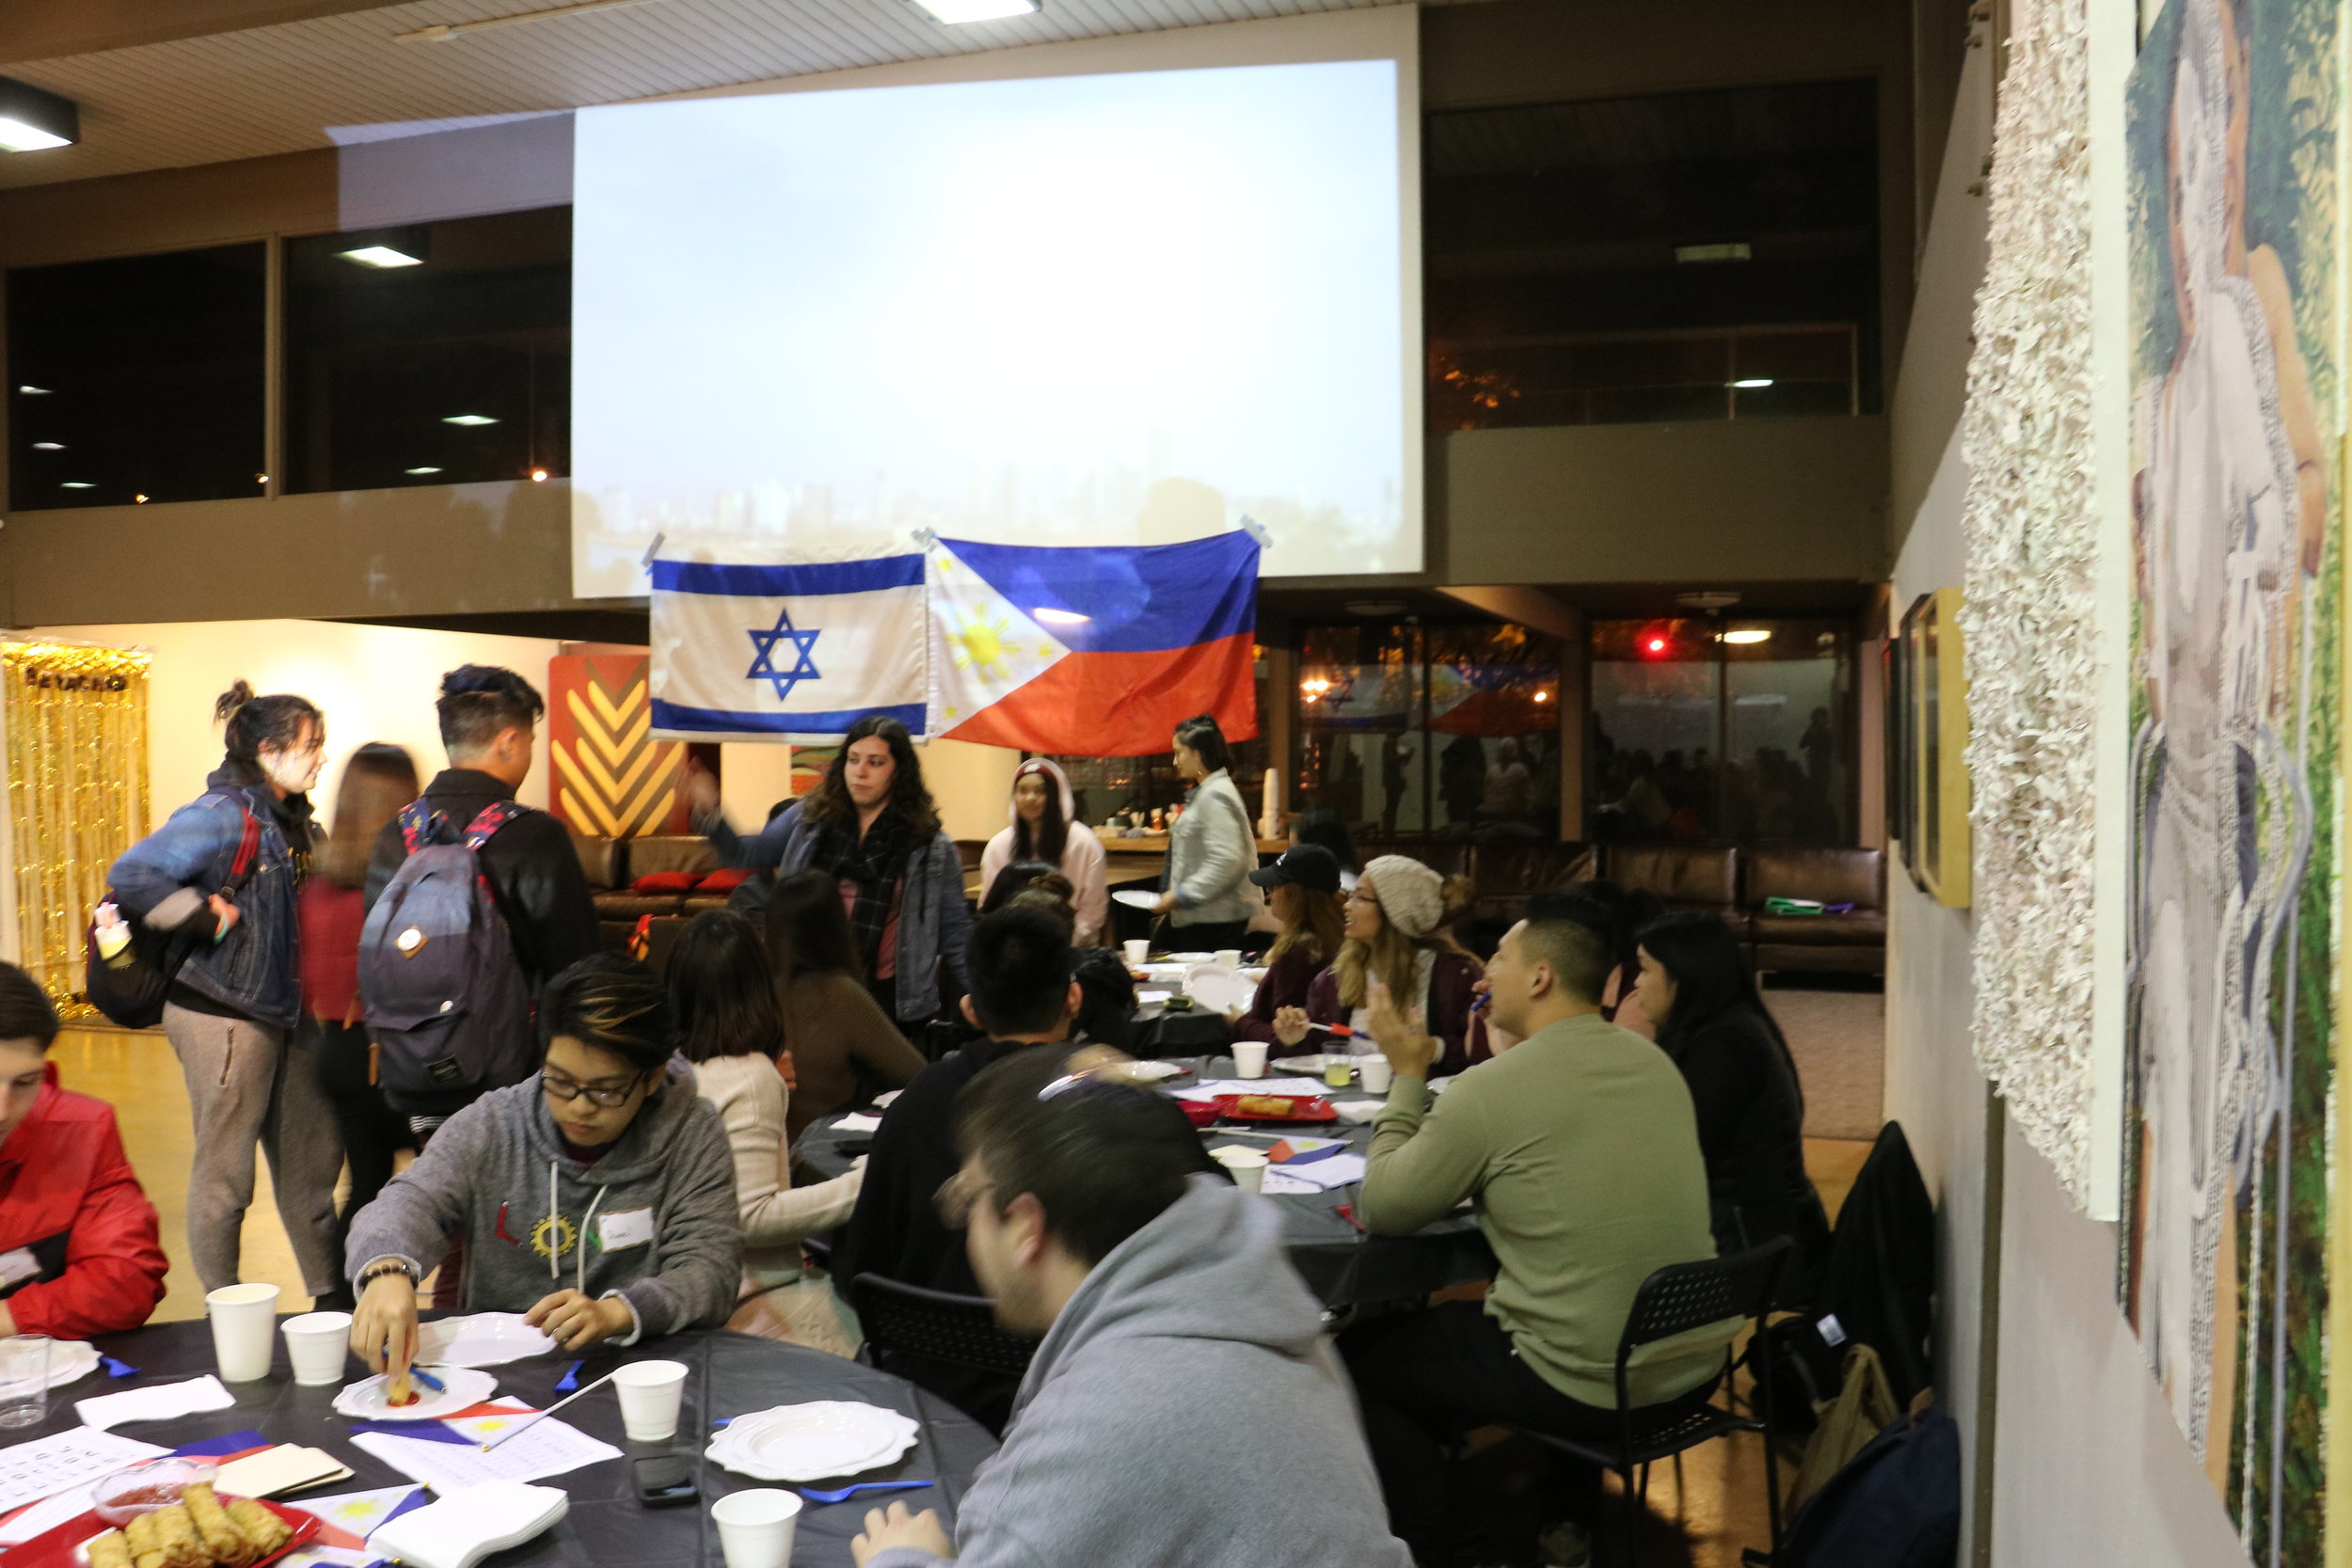 Keziah hopes that future events like Beyachad will continue to strengthen relationships between both communities.